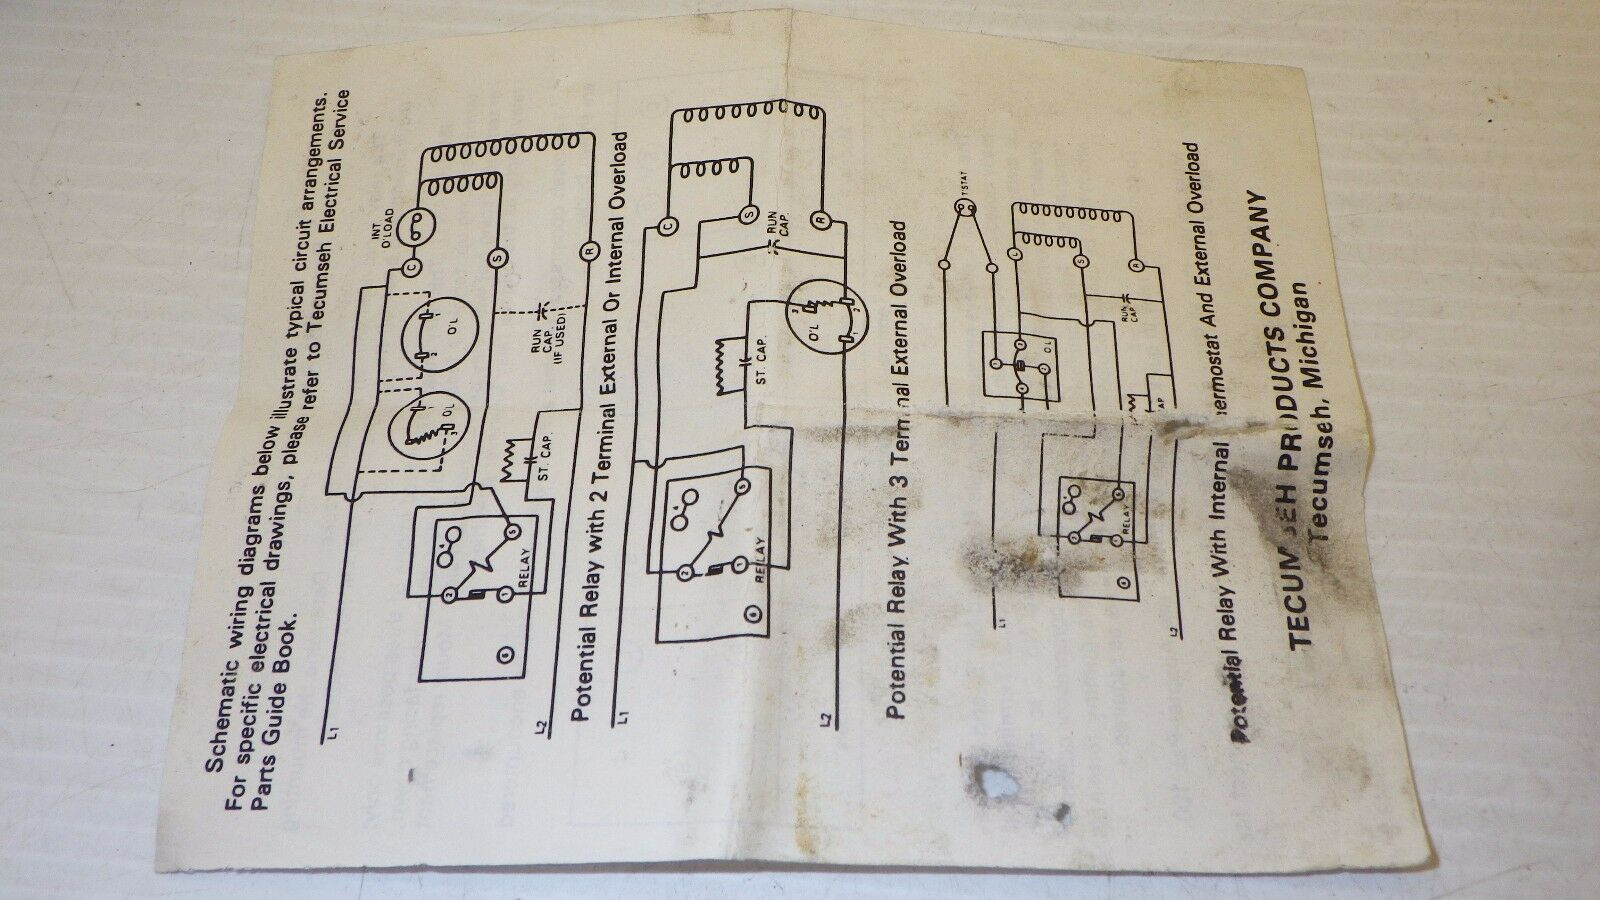 Tecumseh Potential Relay Wiring Diagram Smart Diagrams Tp82472 Current Sensing Ebay Rh Com Operation Compressor